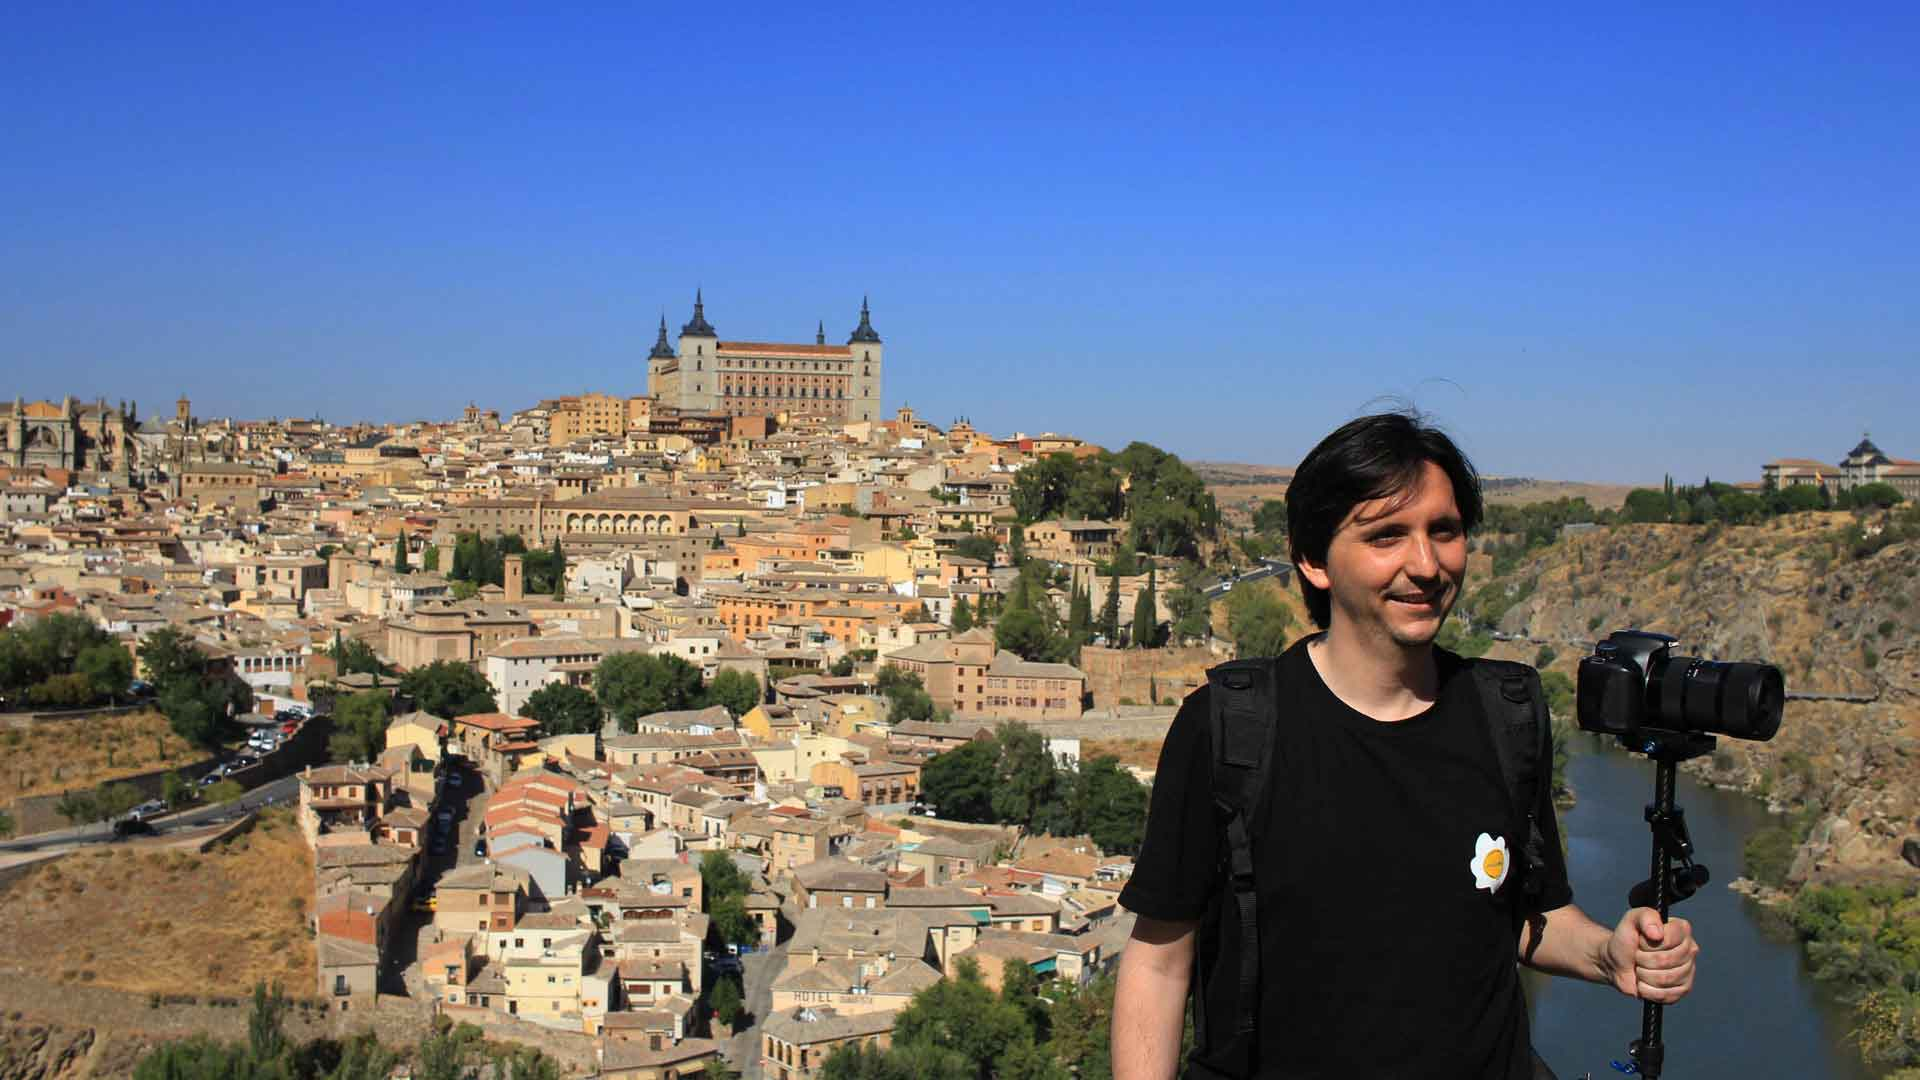 Nico Beaumont filmmmaker in Toledo, Spain